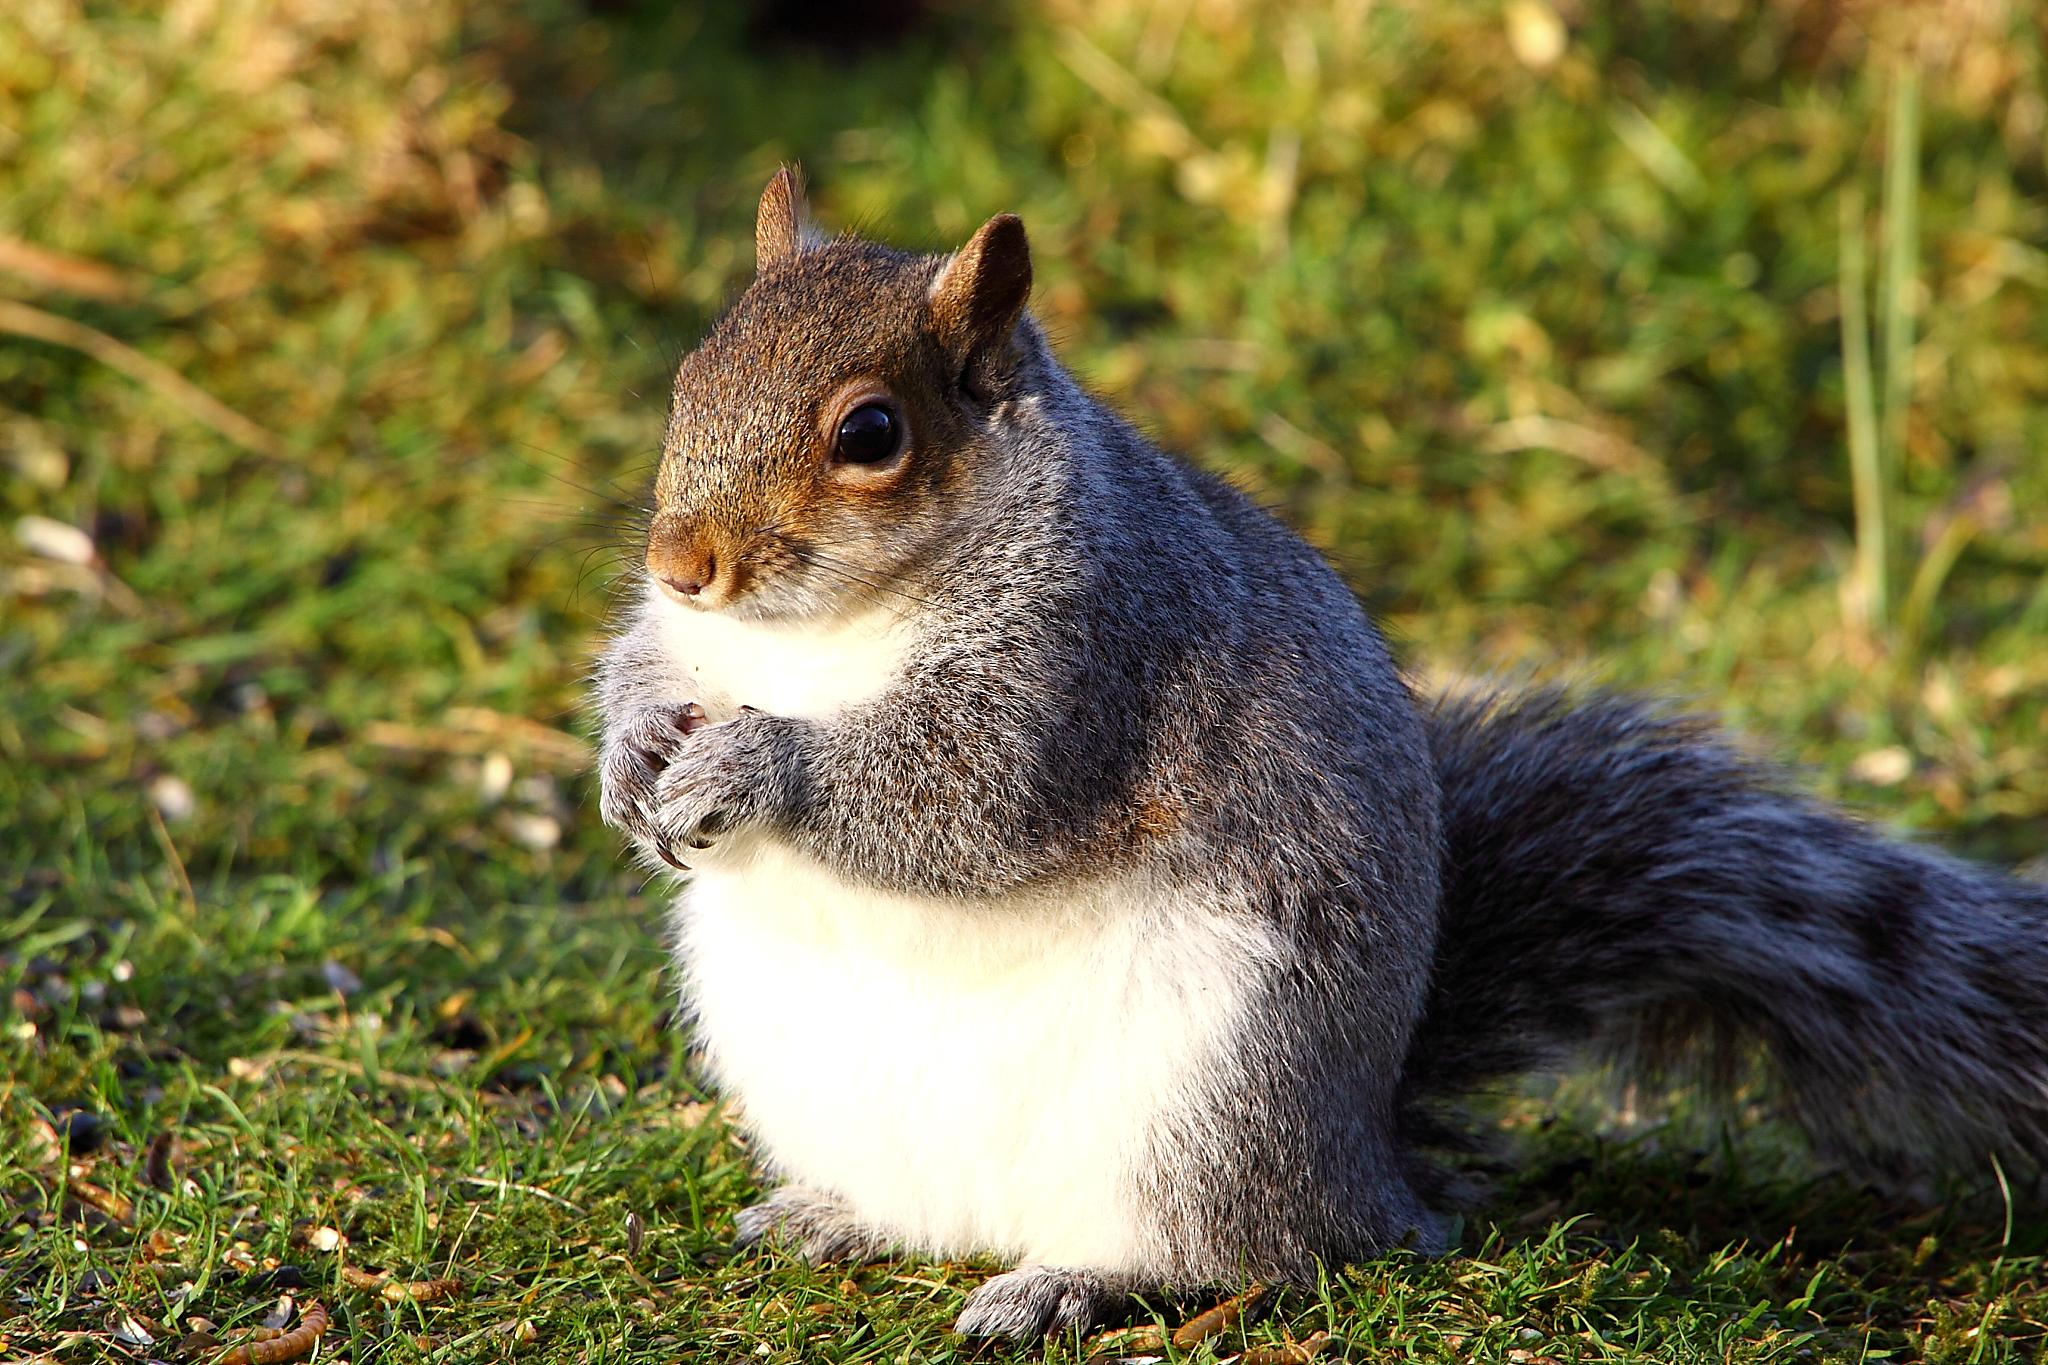 Fat Squirrel. Photo: Flickr, Airwolfhound